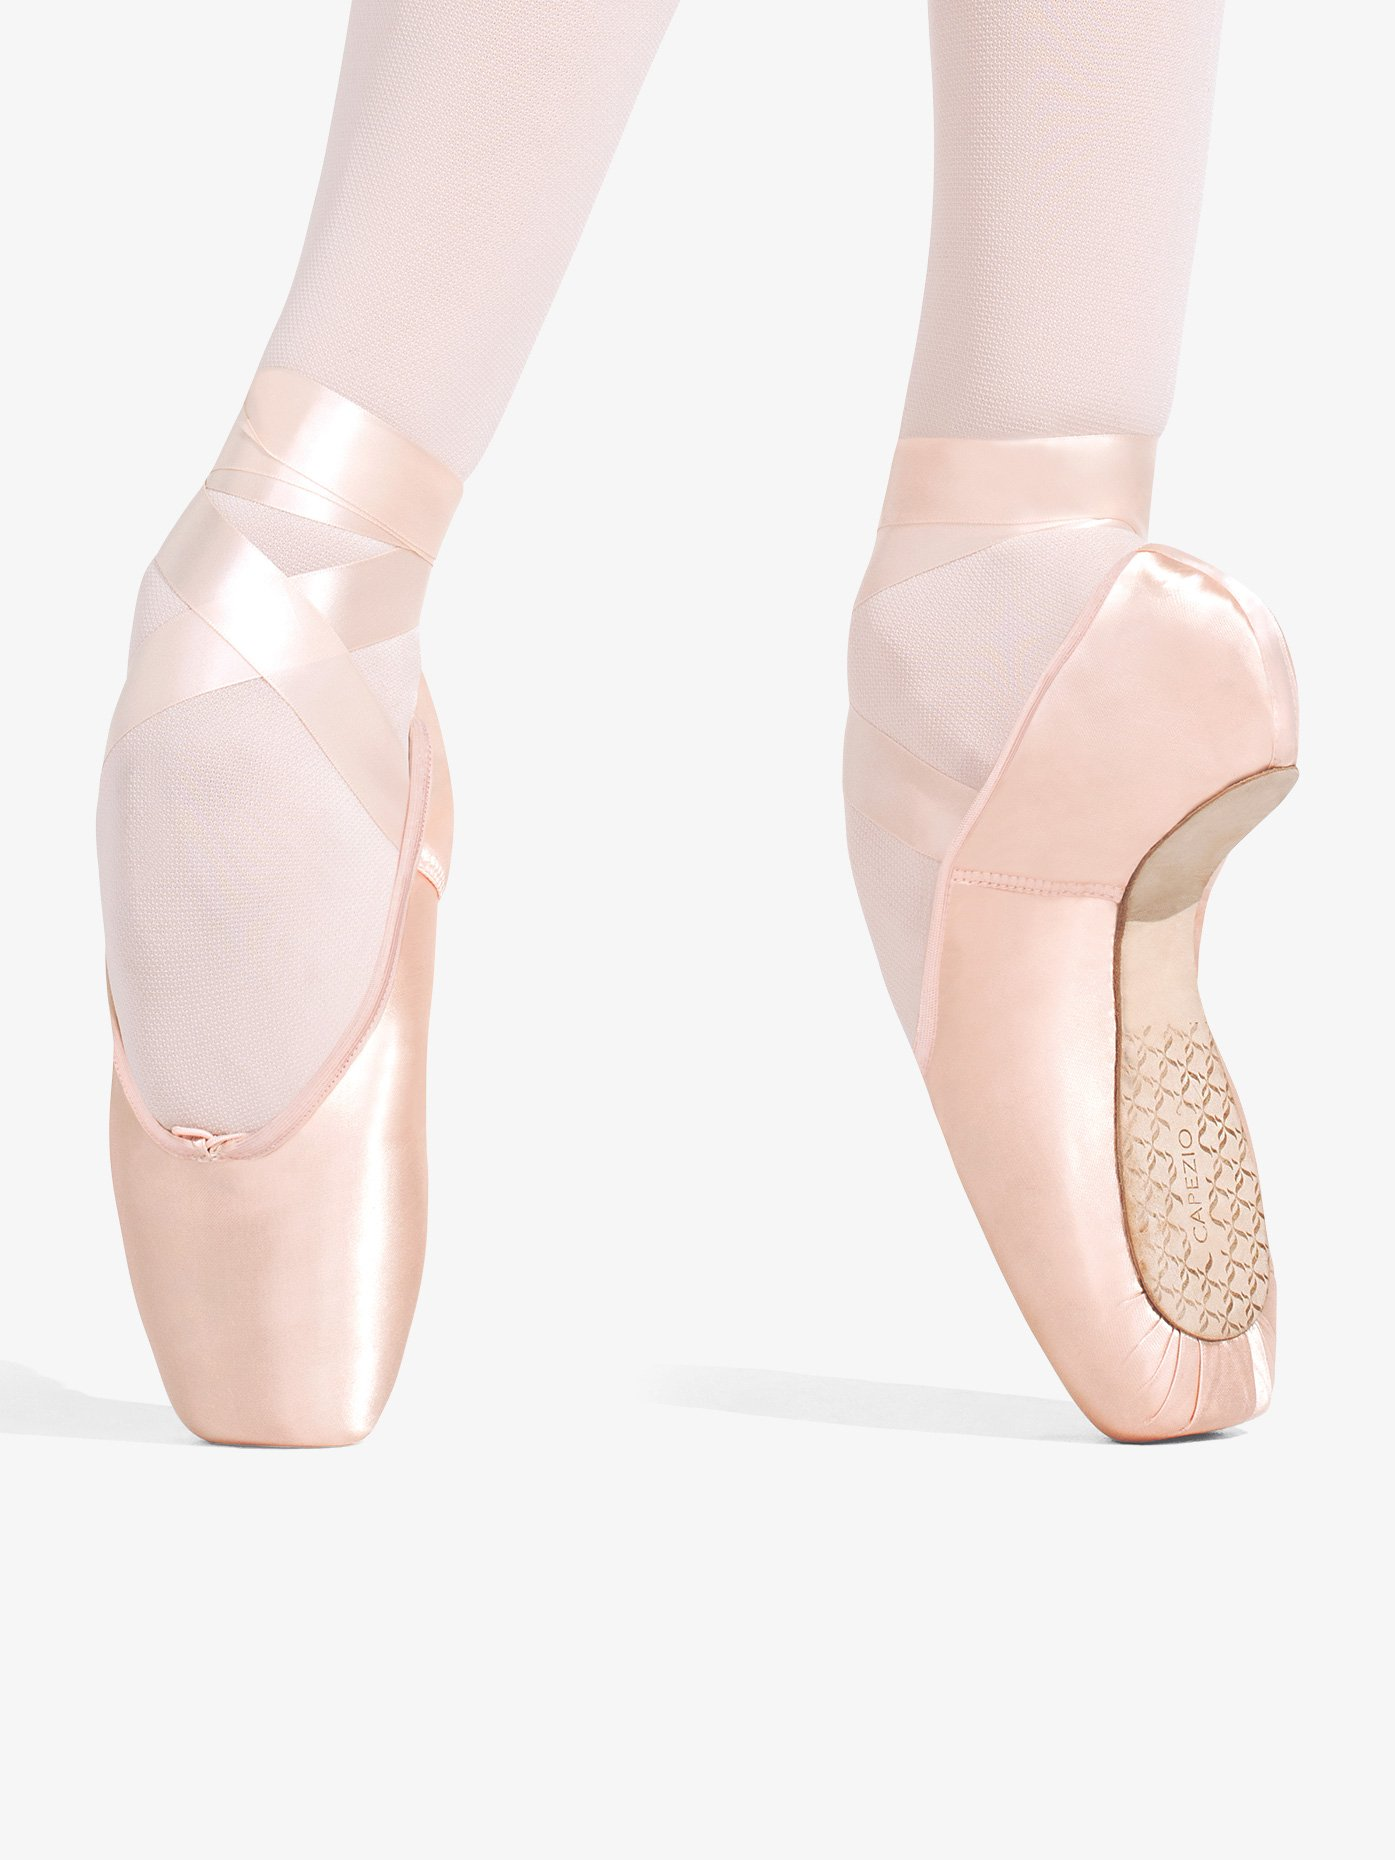 Capezio Womens Developpe #5 Shank Pointe Shoes 1137W